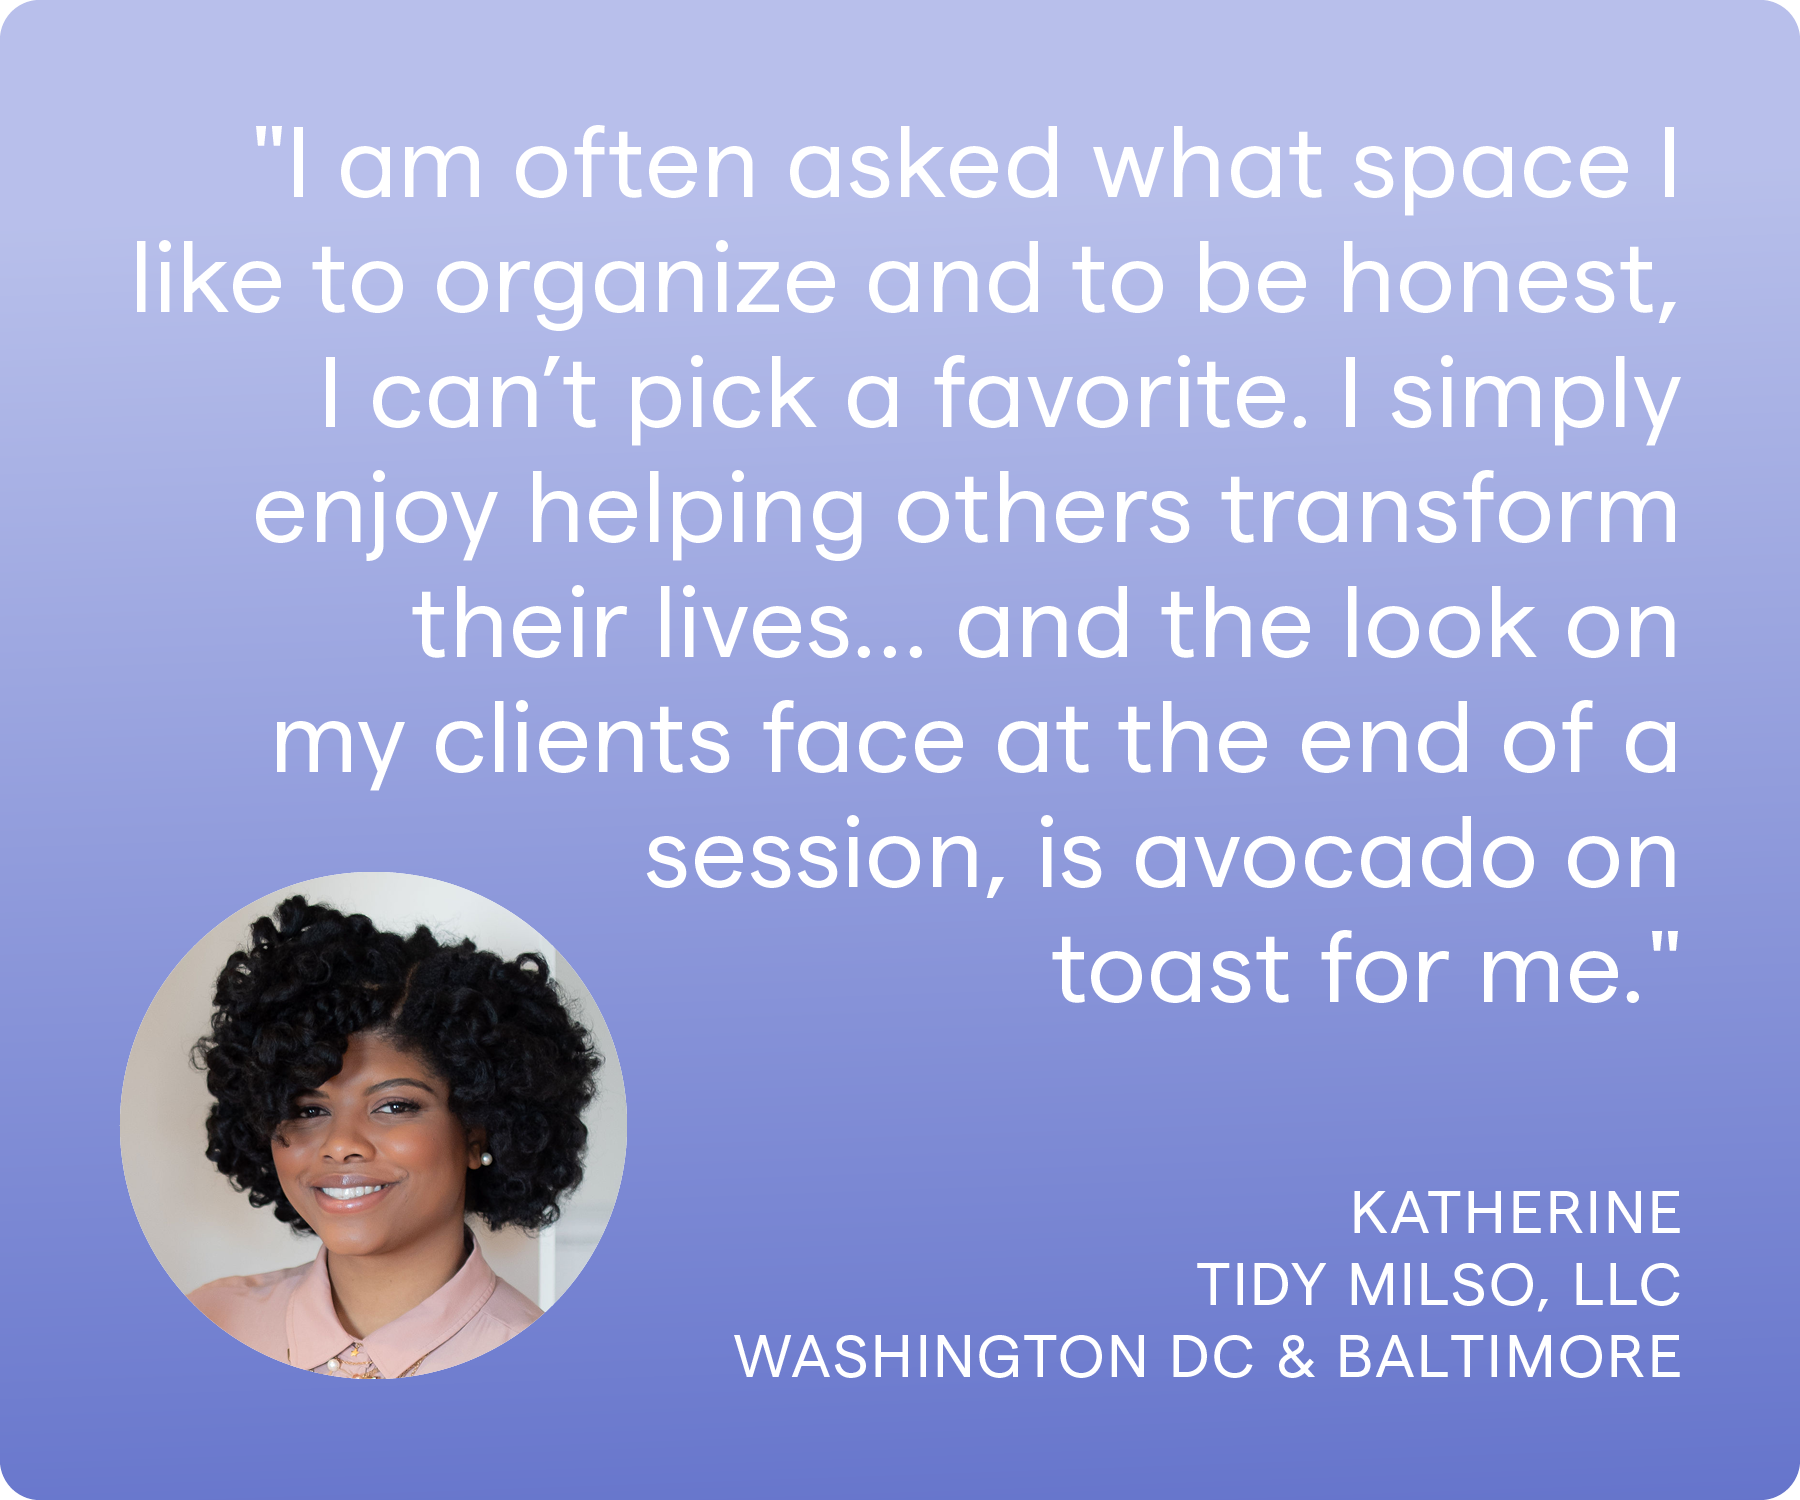 'I am often asked what space I like to organize and to be honest, I can't pick a favorite. I simply enjoy helping others transform their lives… and the look on my clients face at the end of a session, is avocado on toast for me.' Katherine, Tidy Milso LLC, Washington DC and Baltimore